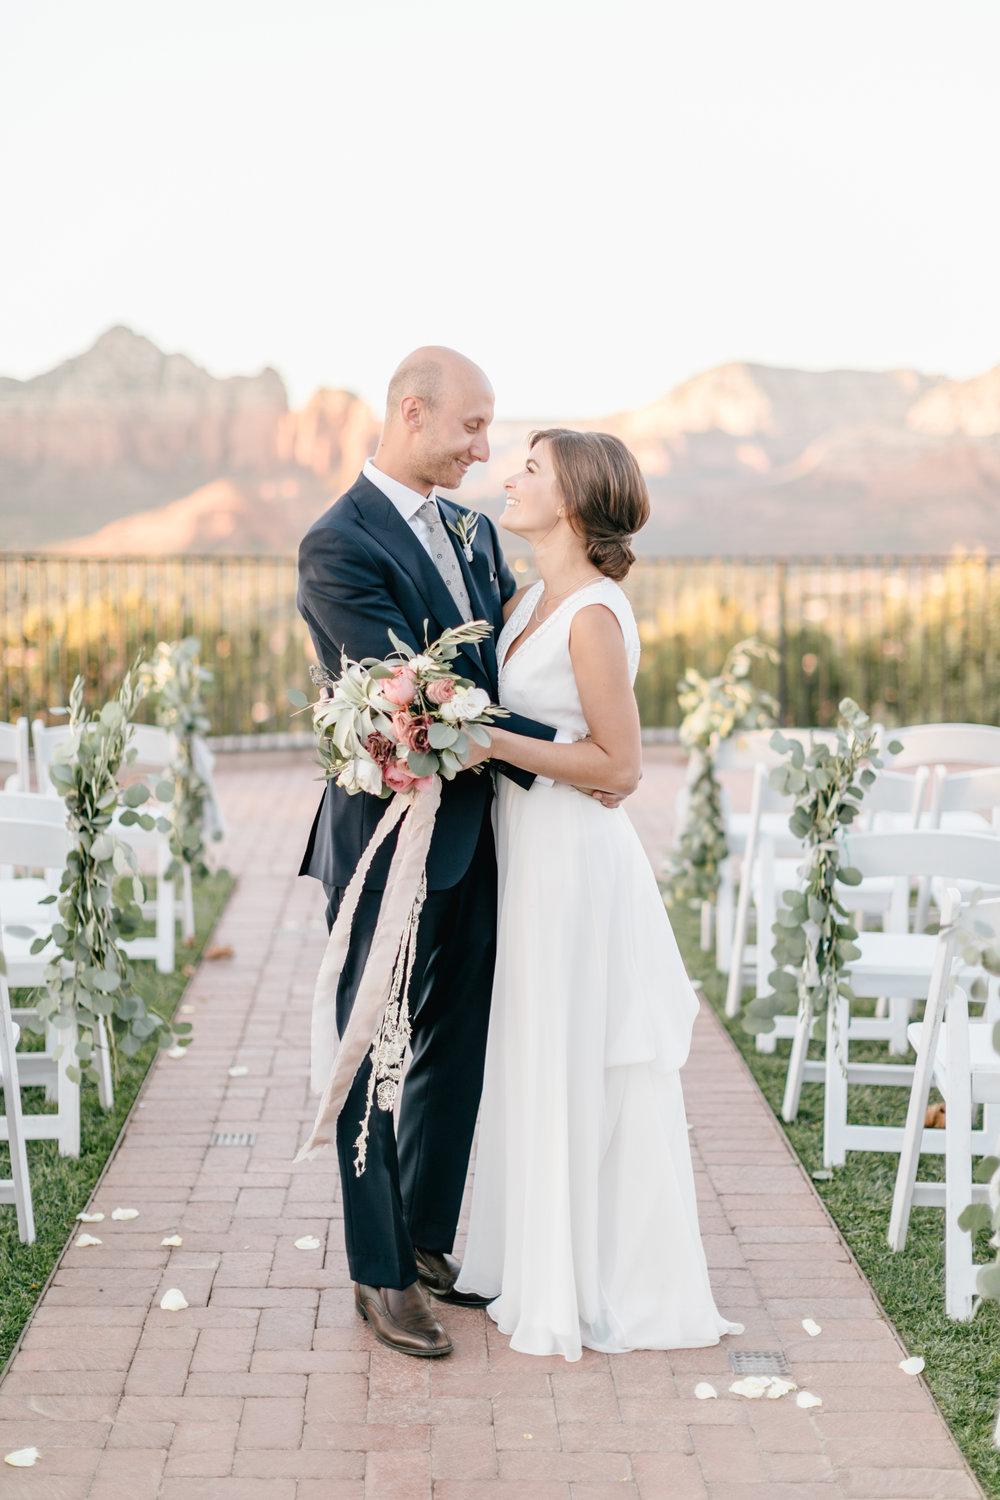 An Intimate Sedona Wedding Nestled in the Arizona Red Rocks  - Tremaine Ranch - AZ Arizona Wedding & Event, Vintage, Furniture, Tableware, & Specialty Rentals in Phoenix, Tucson, Flagstaff, Sedona, Tempe, Chandler, Mesa, Gilbert, Prescott, Payson 5169.jpg